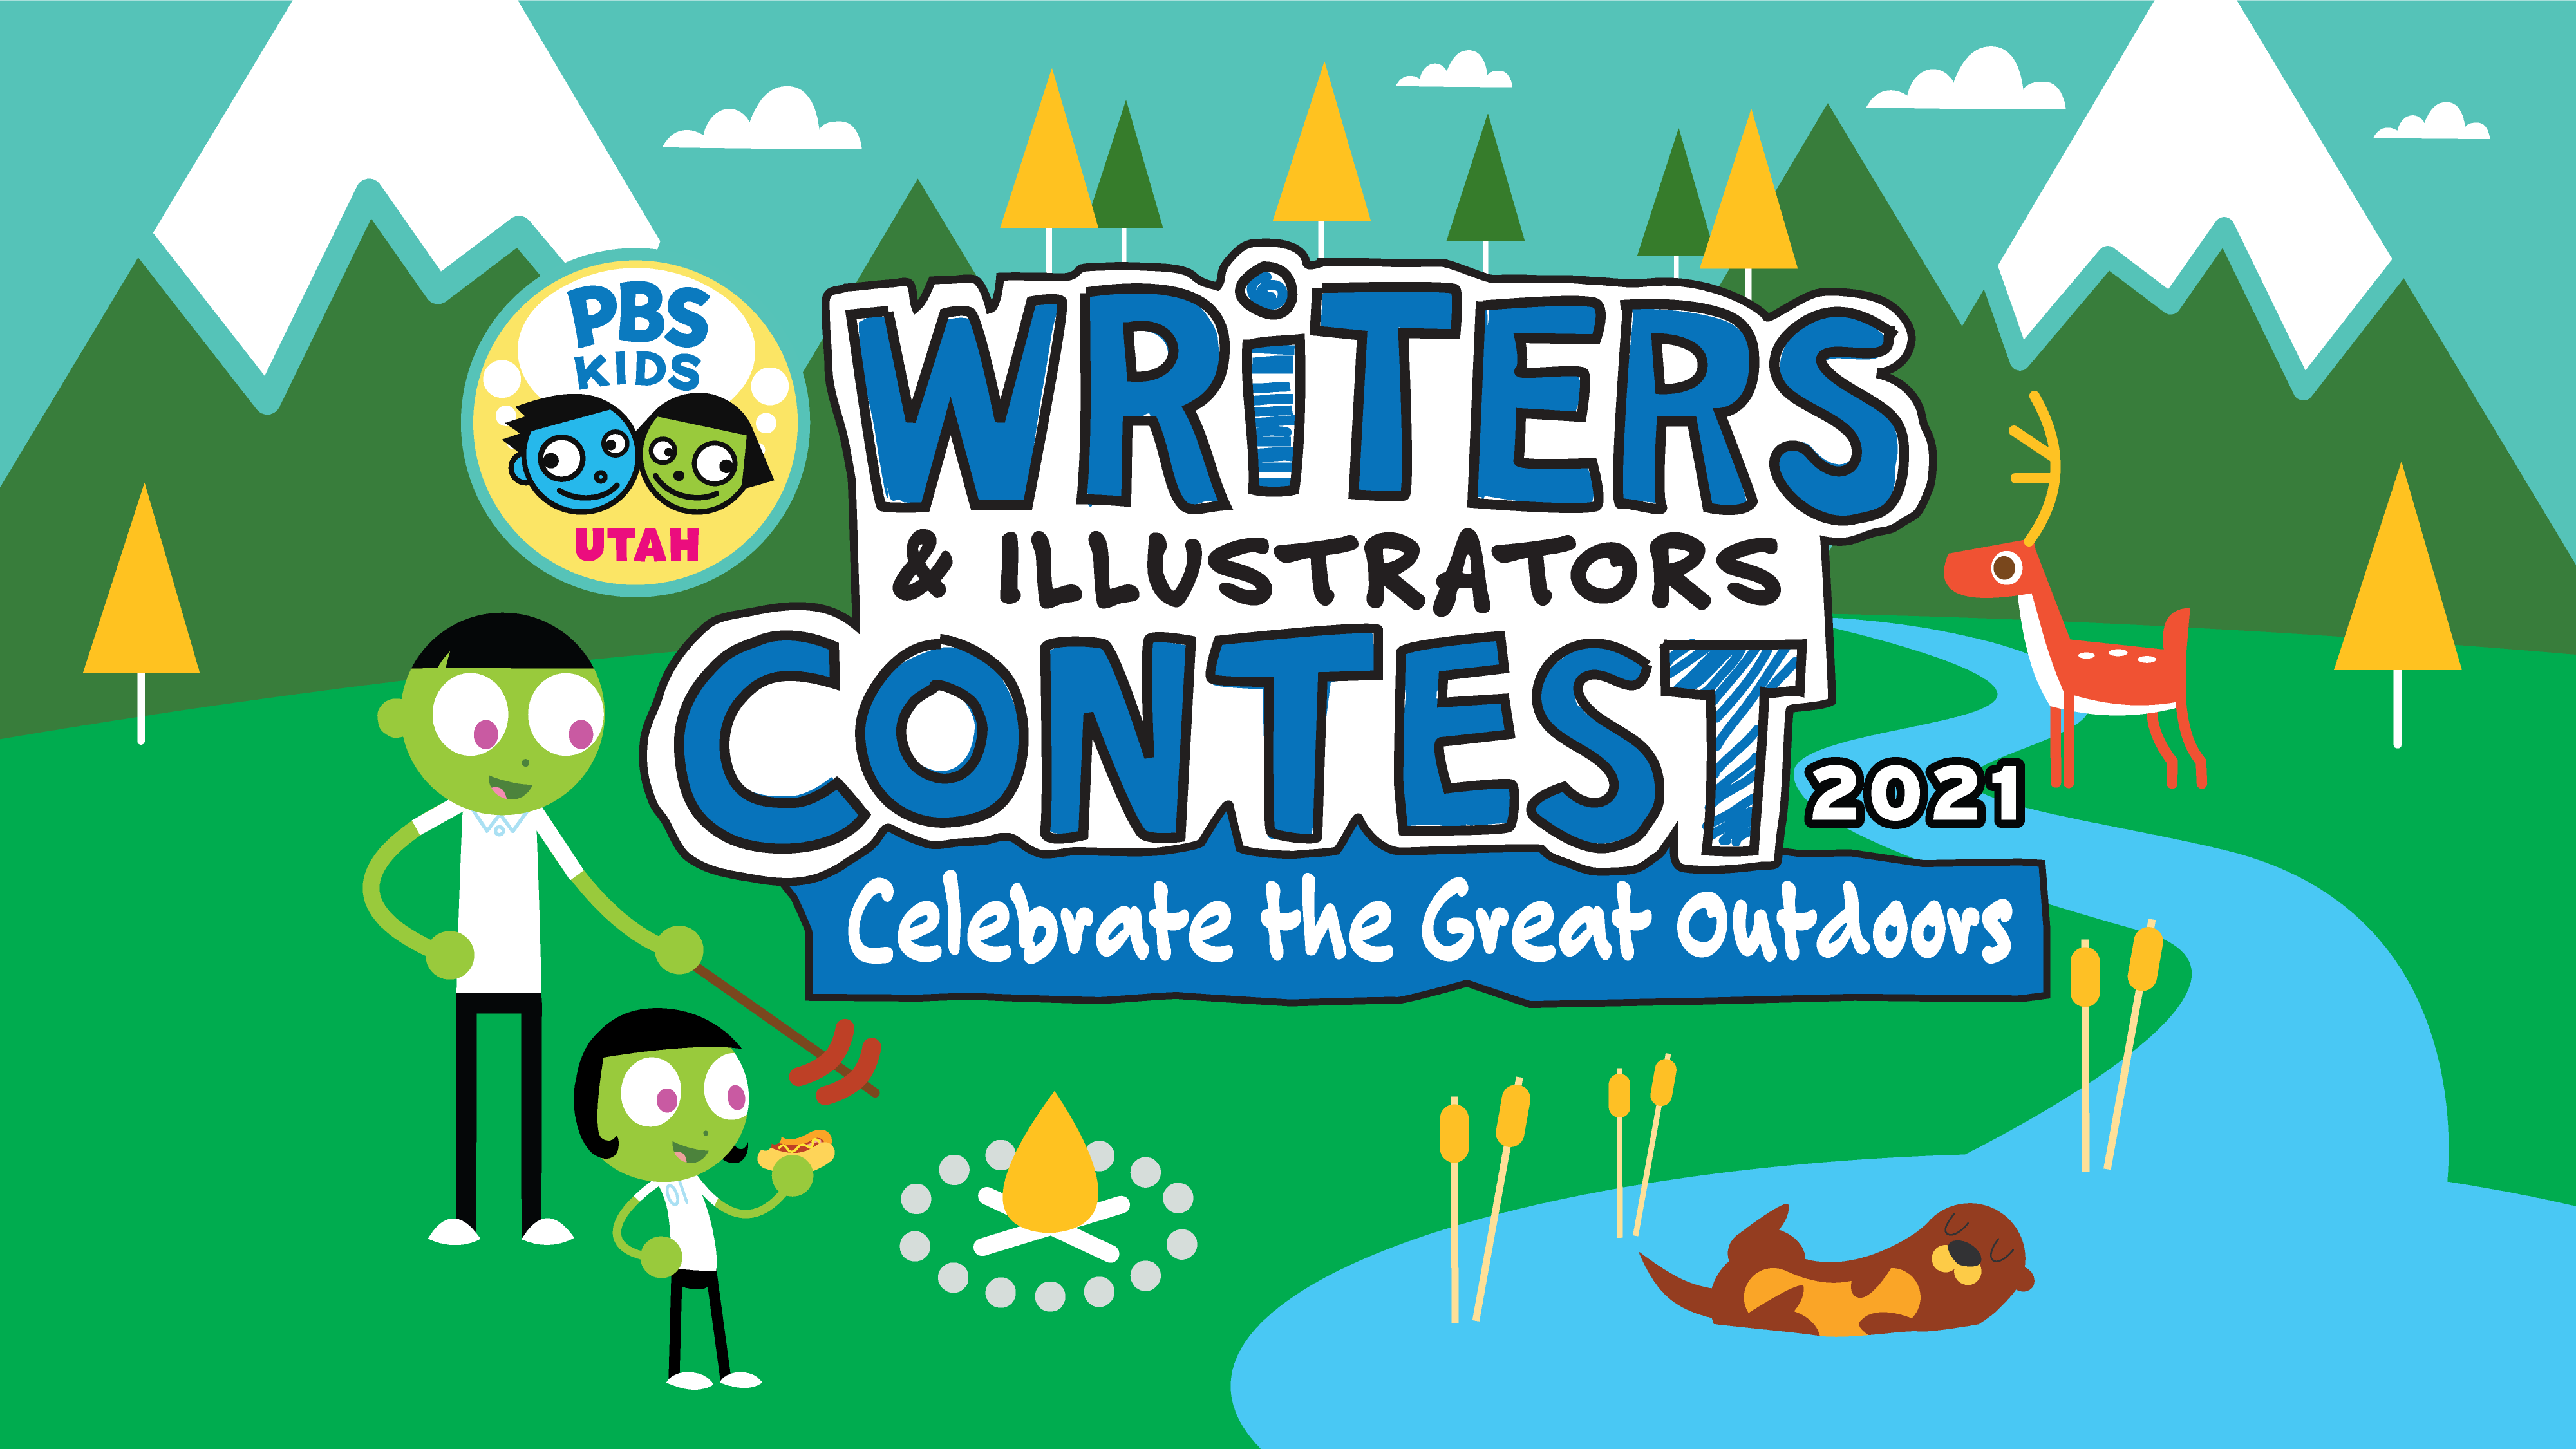 Writers & Illustrators Contest 2021 - Celebrate the Great Outdoors